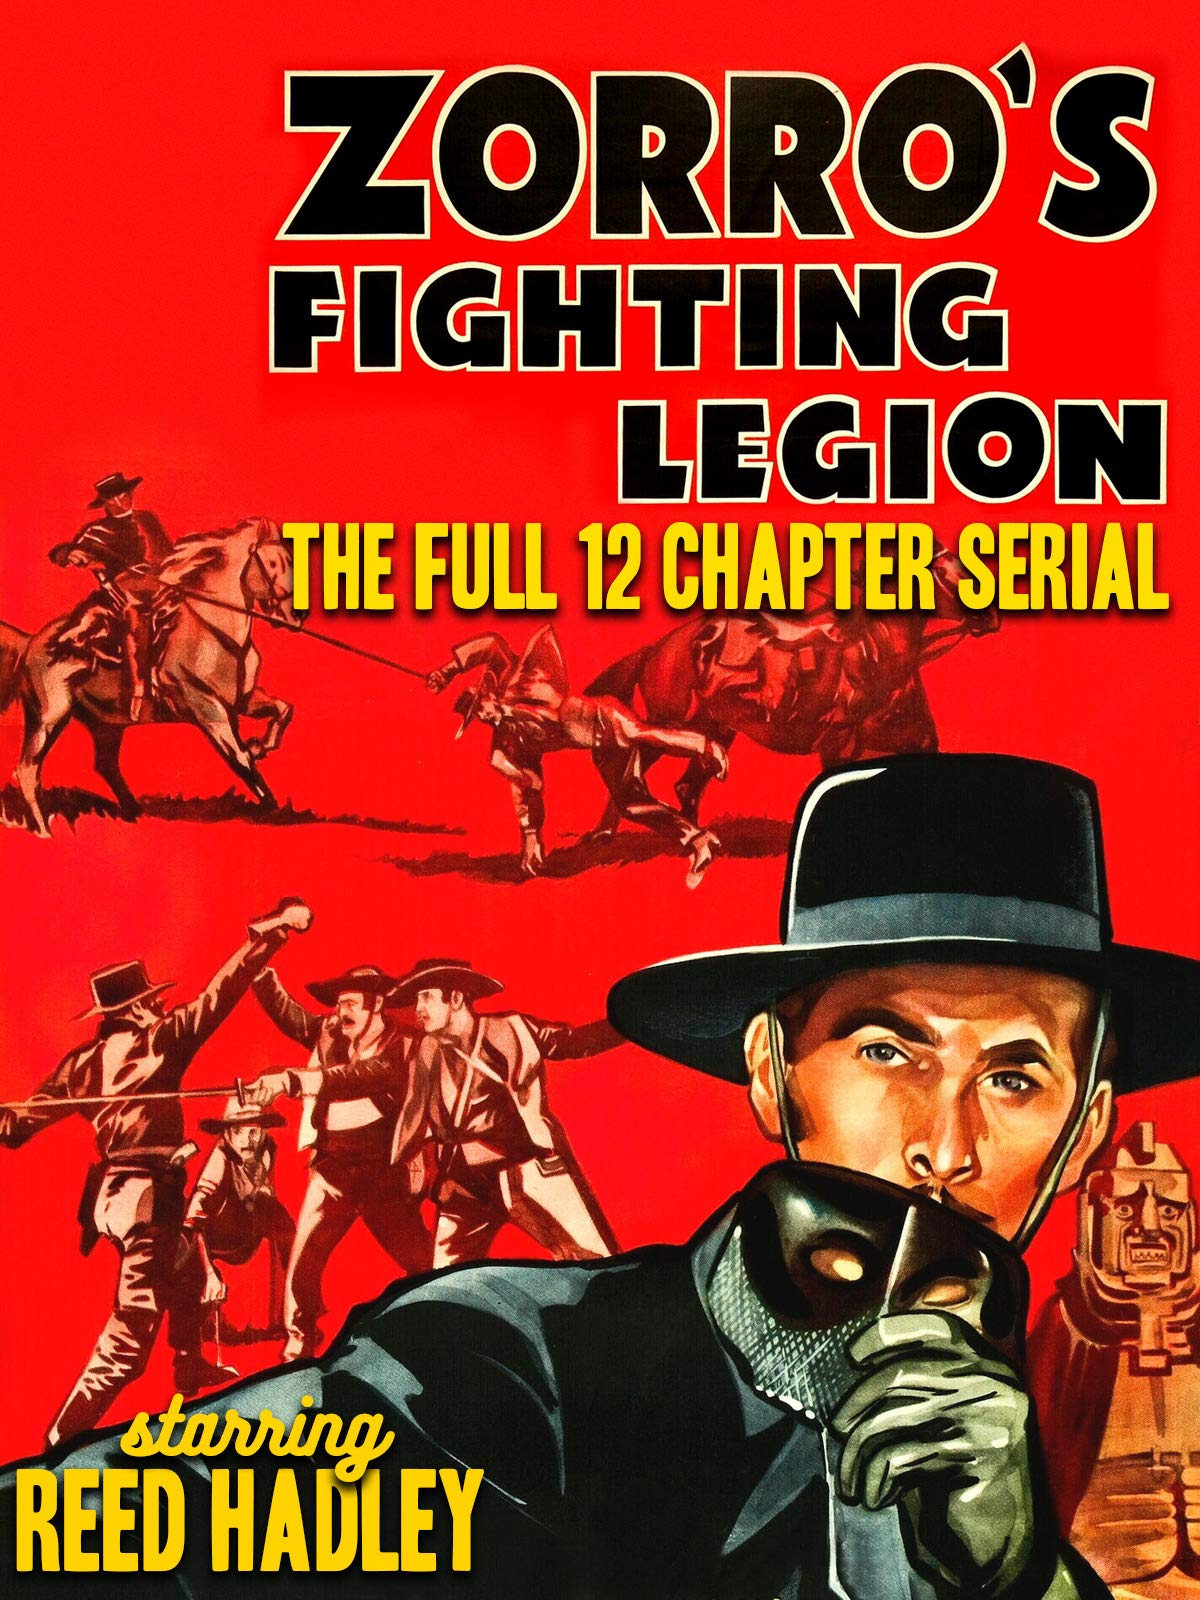 Zorro's Fighting Legion - Starring Reed Hadley, The Full 12 Chapter Serial on Amazon Prime Video UK